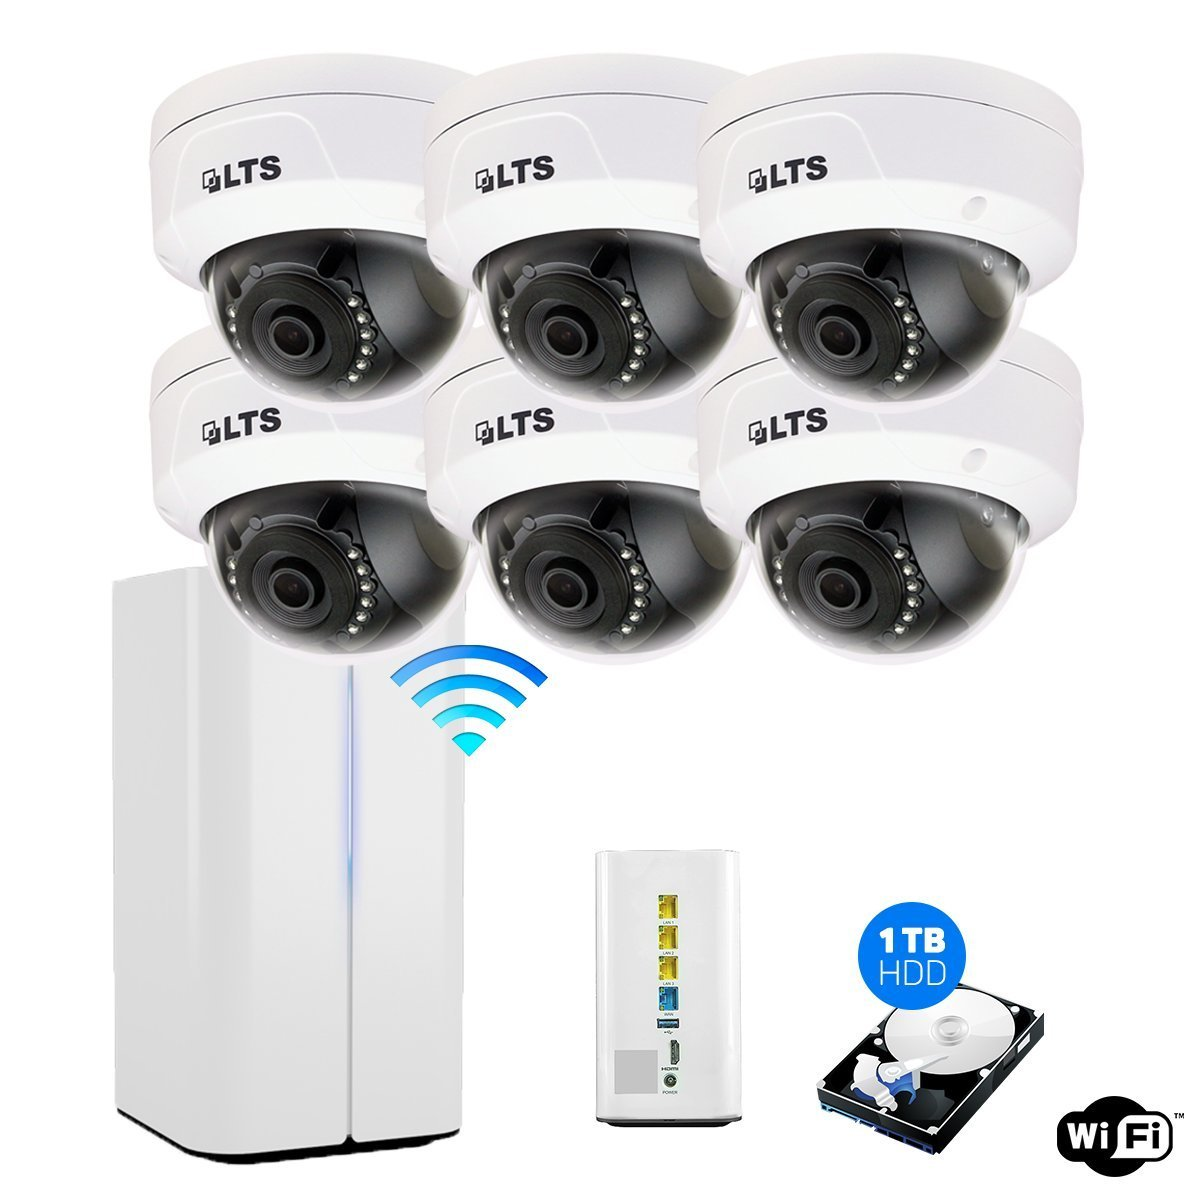 Cheap Lts Security Cameras, find Lts Security Cameras deals